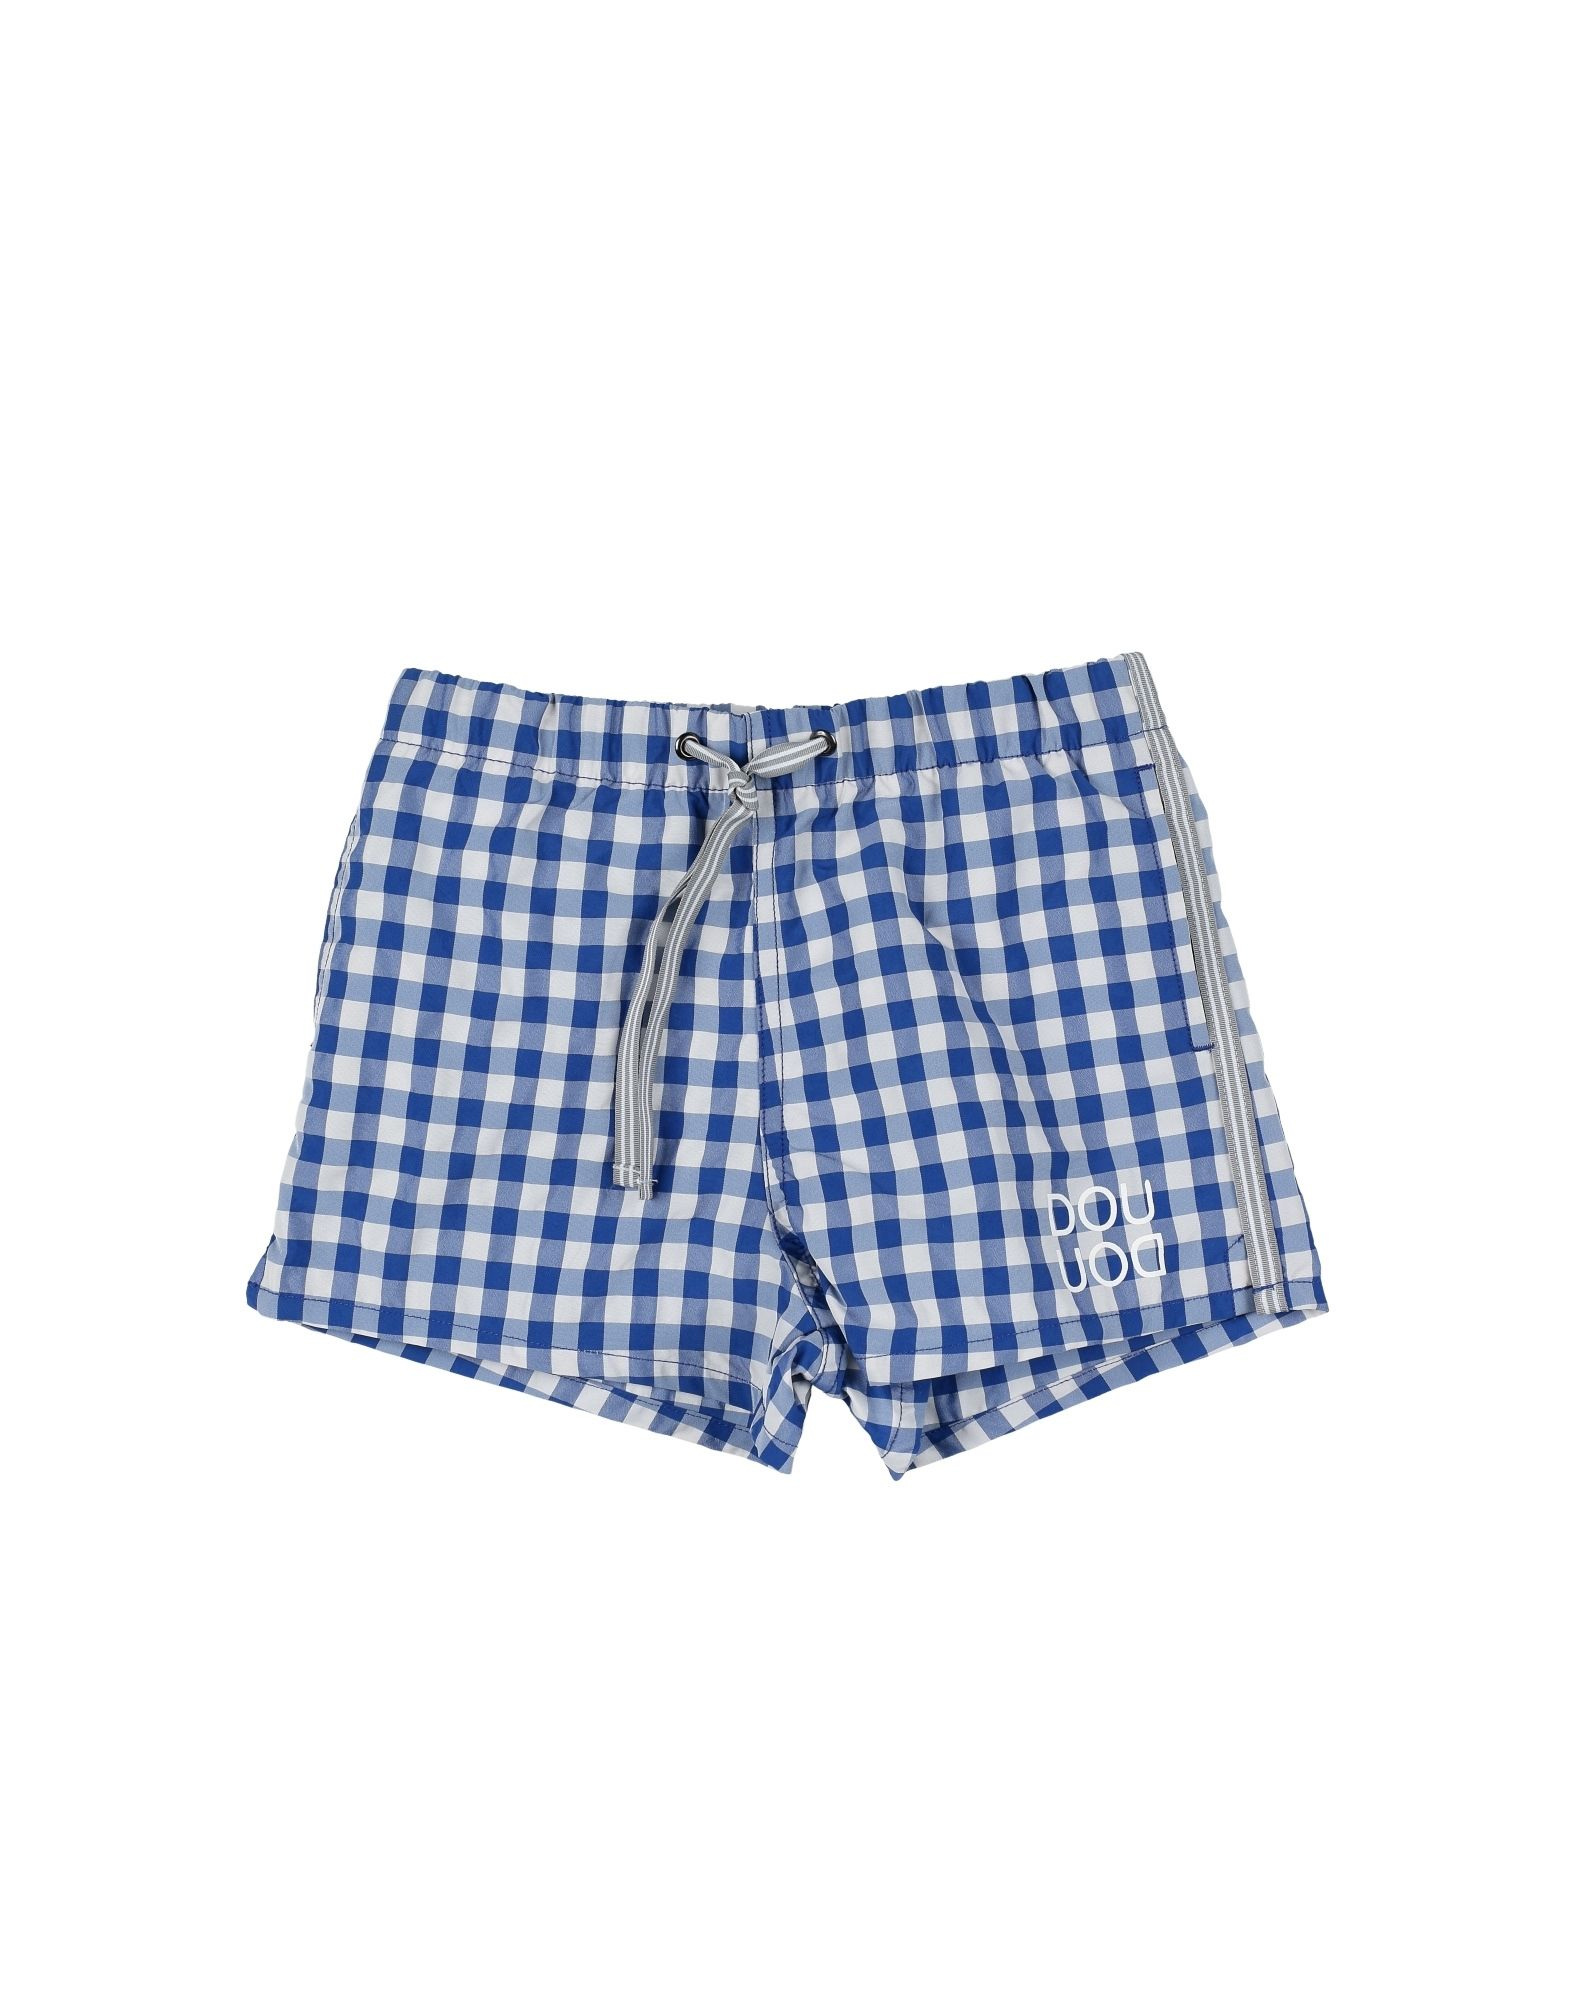 DOUUOD Swim trunks